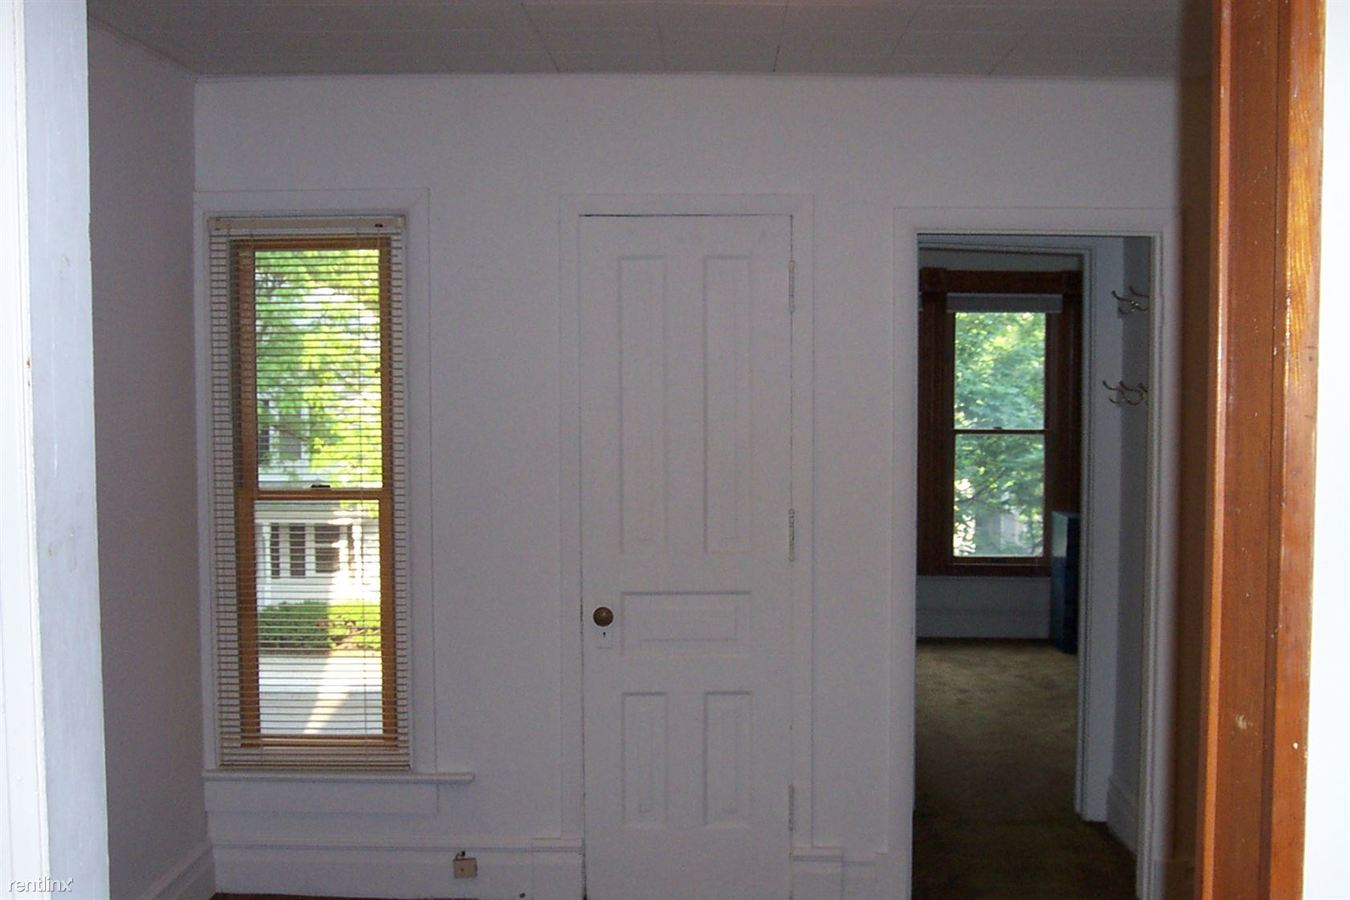 1 Bedroom 1 Bathroom Apartment for rent at 311 Thompson St in Ann Arbor, MI